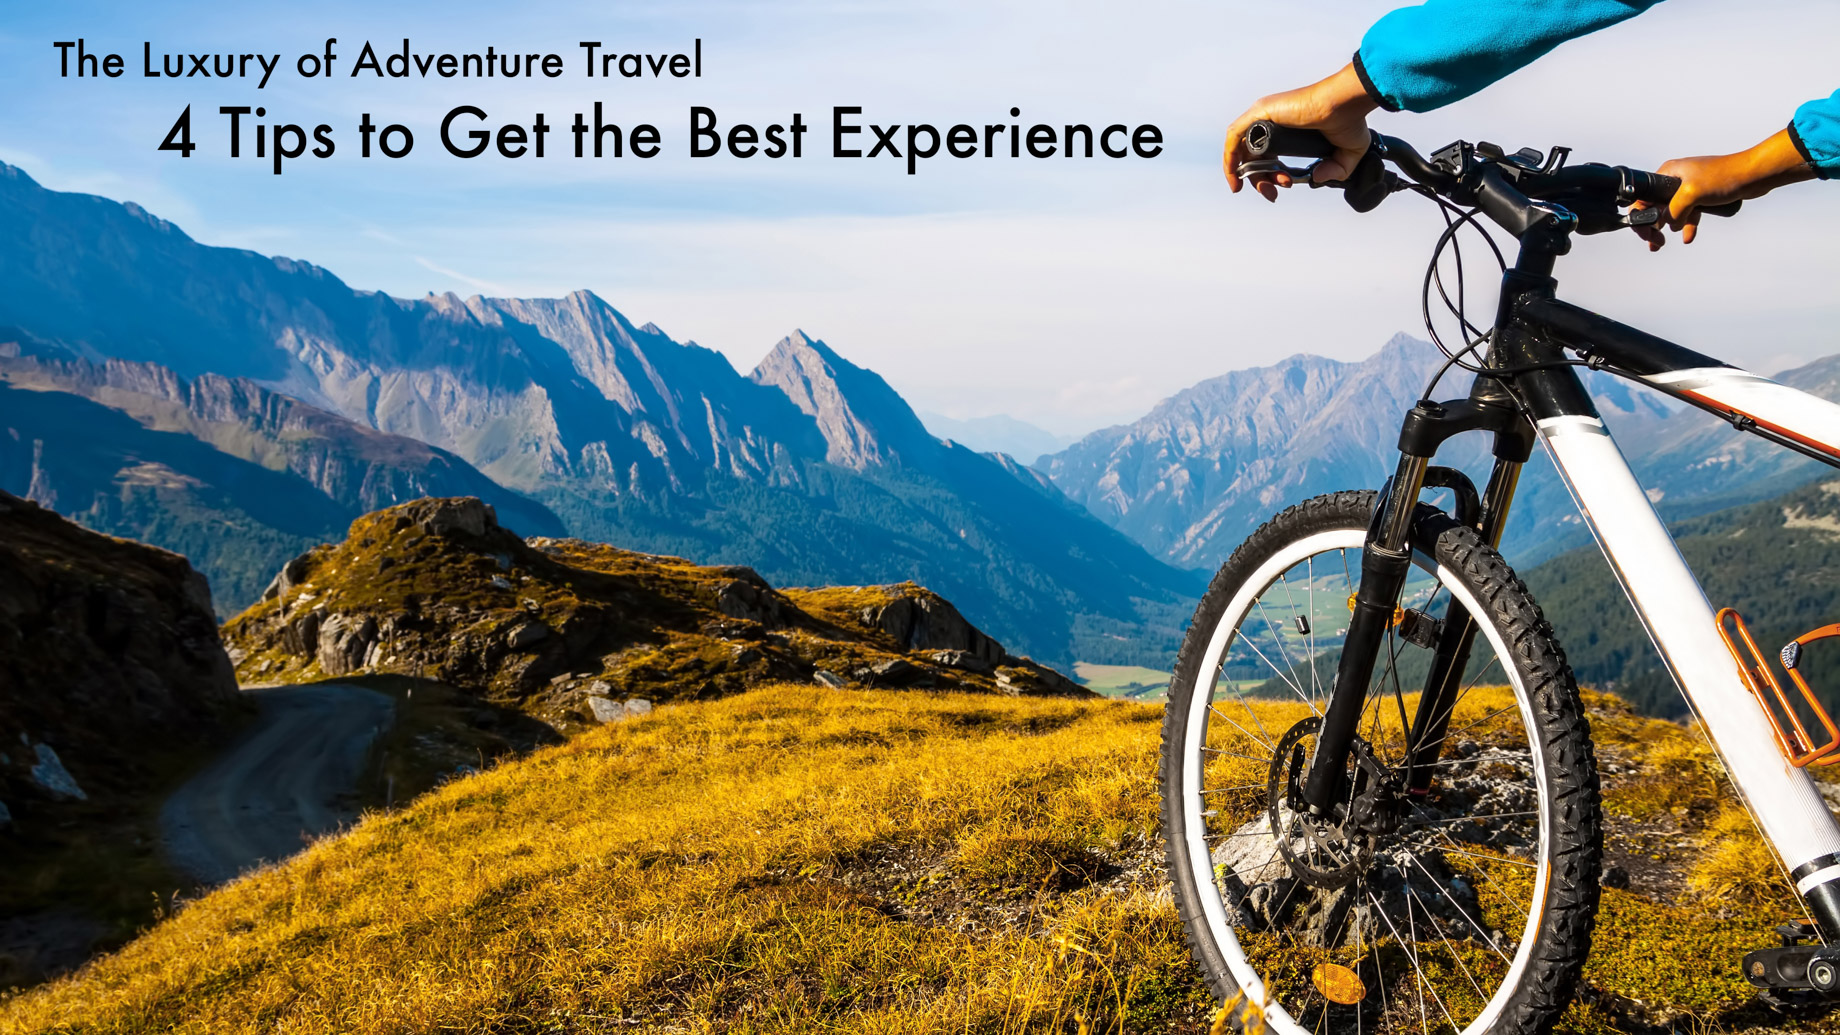 The Luxury of Adventure Travel - 4 Tips to Get the Best Experience